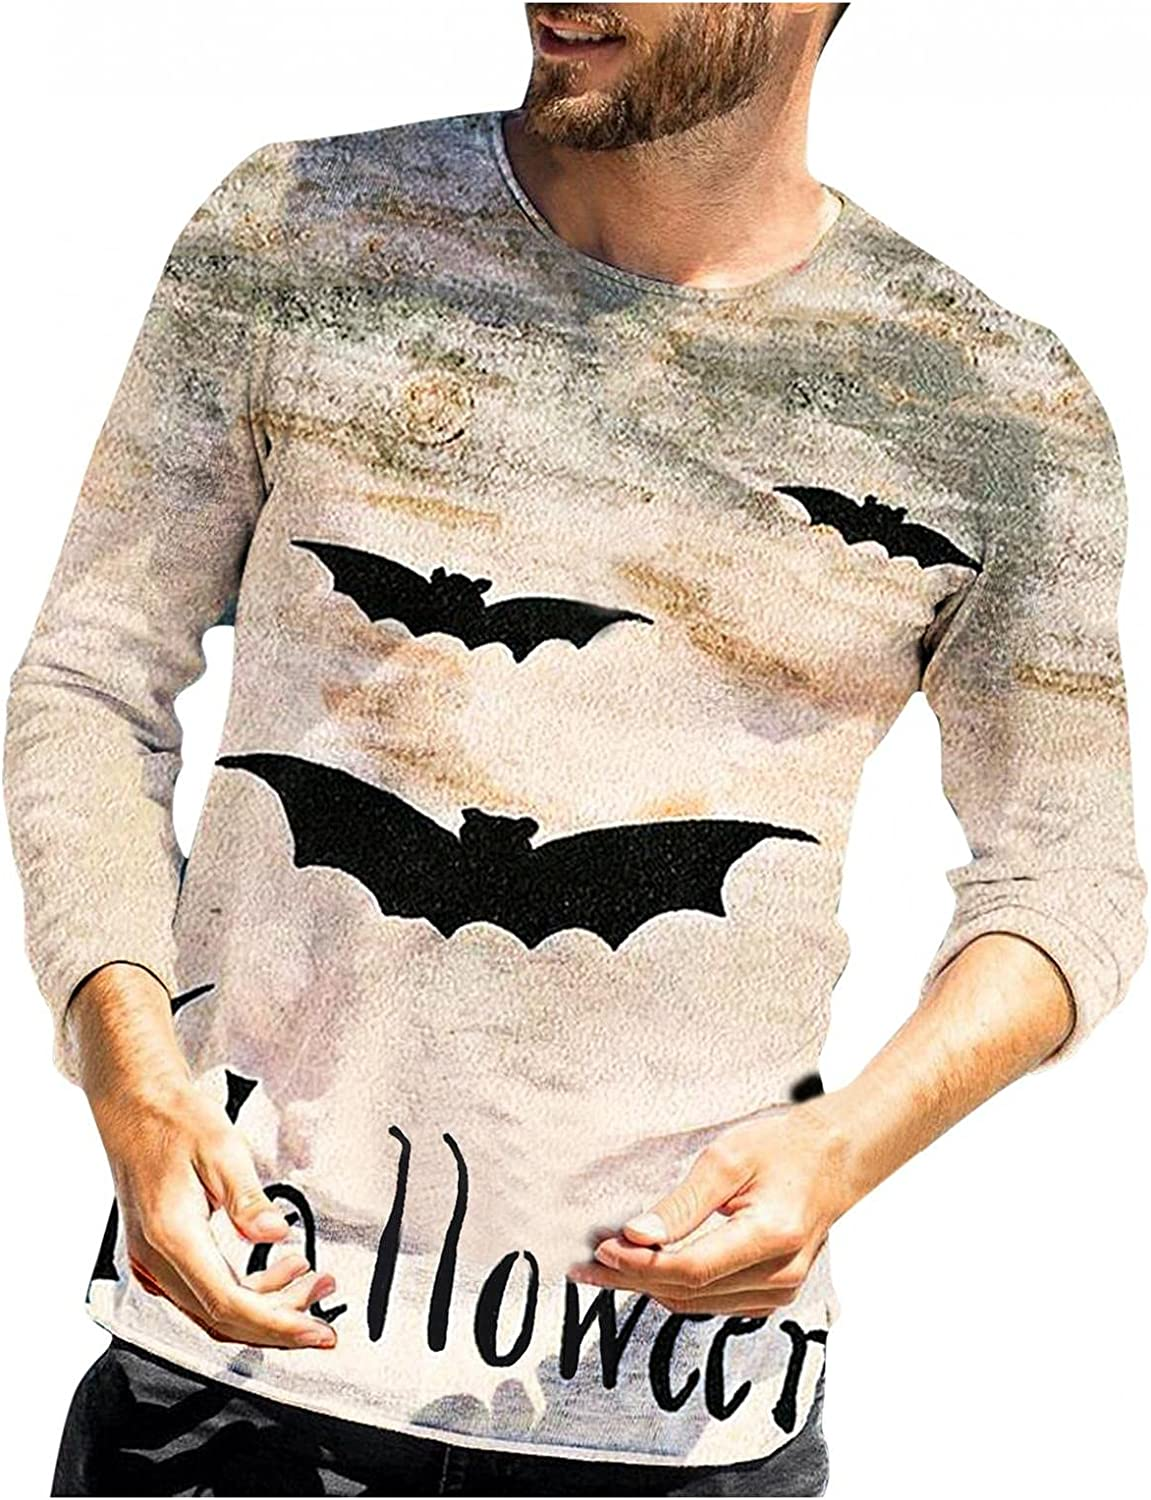 LEIYAN Halloween Muscle Shirts for Men Long Sleeve Crew Neck Novelty Funny 3D Print Tops Gym Workout Blouses S-2XL